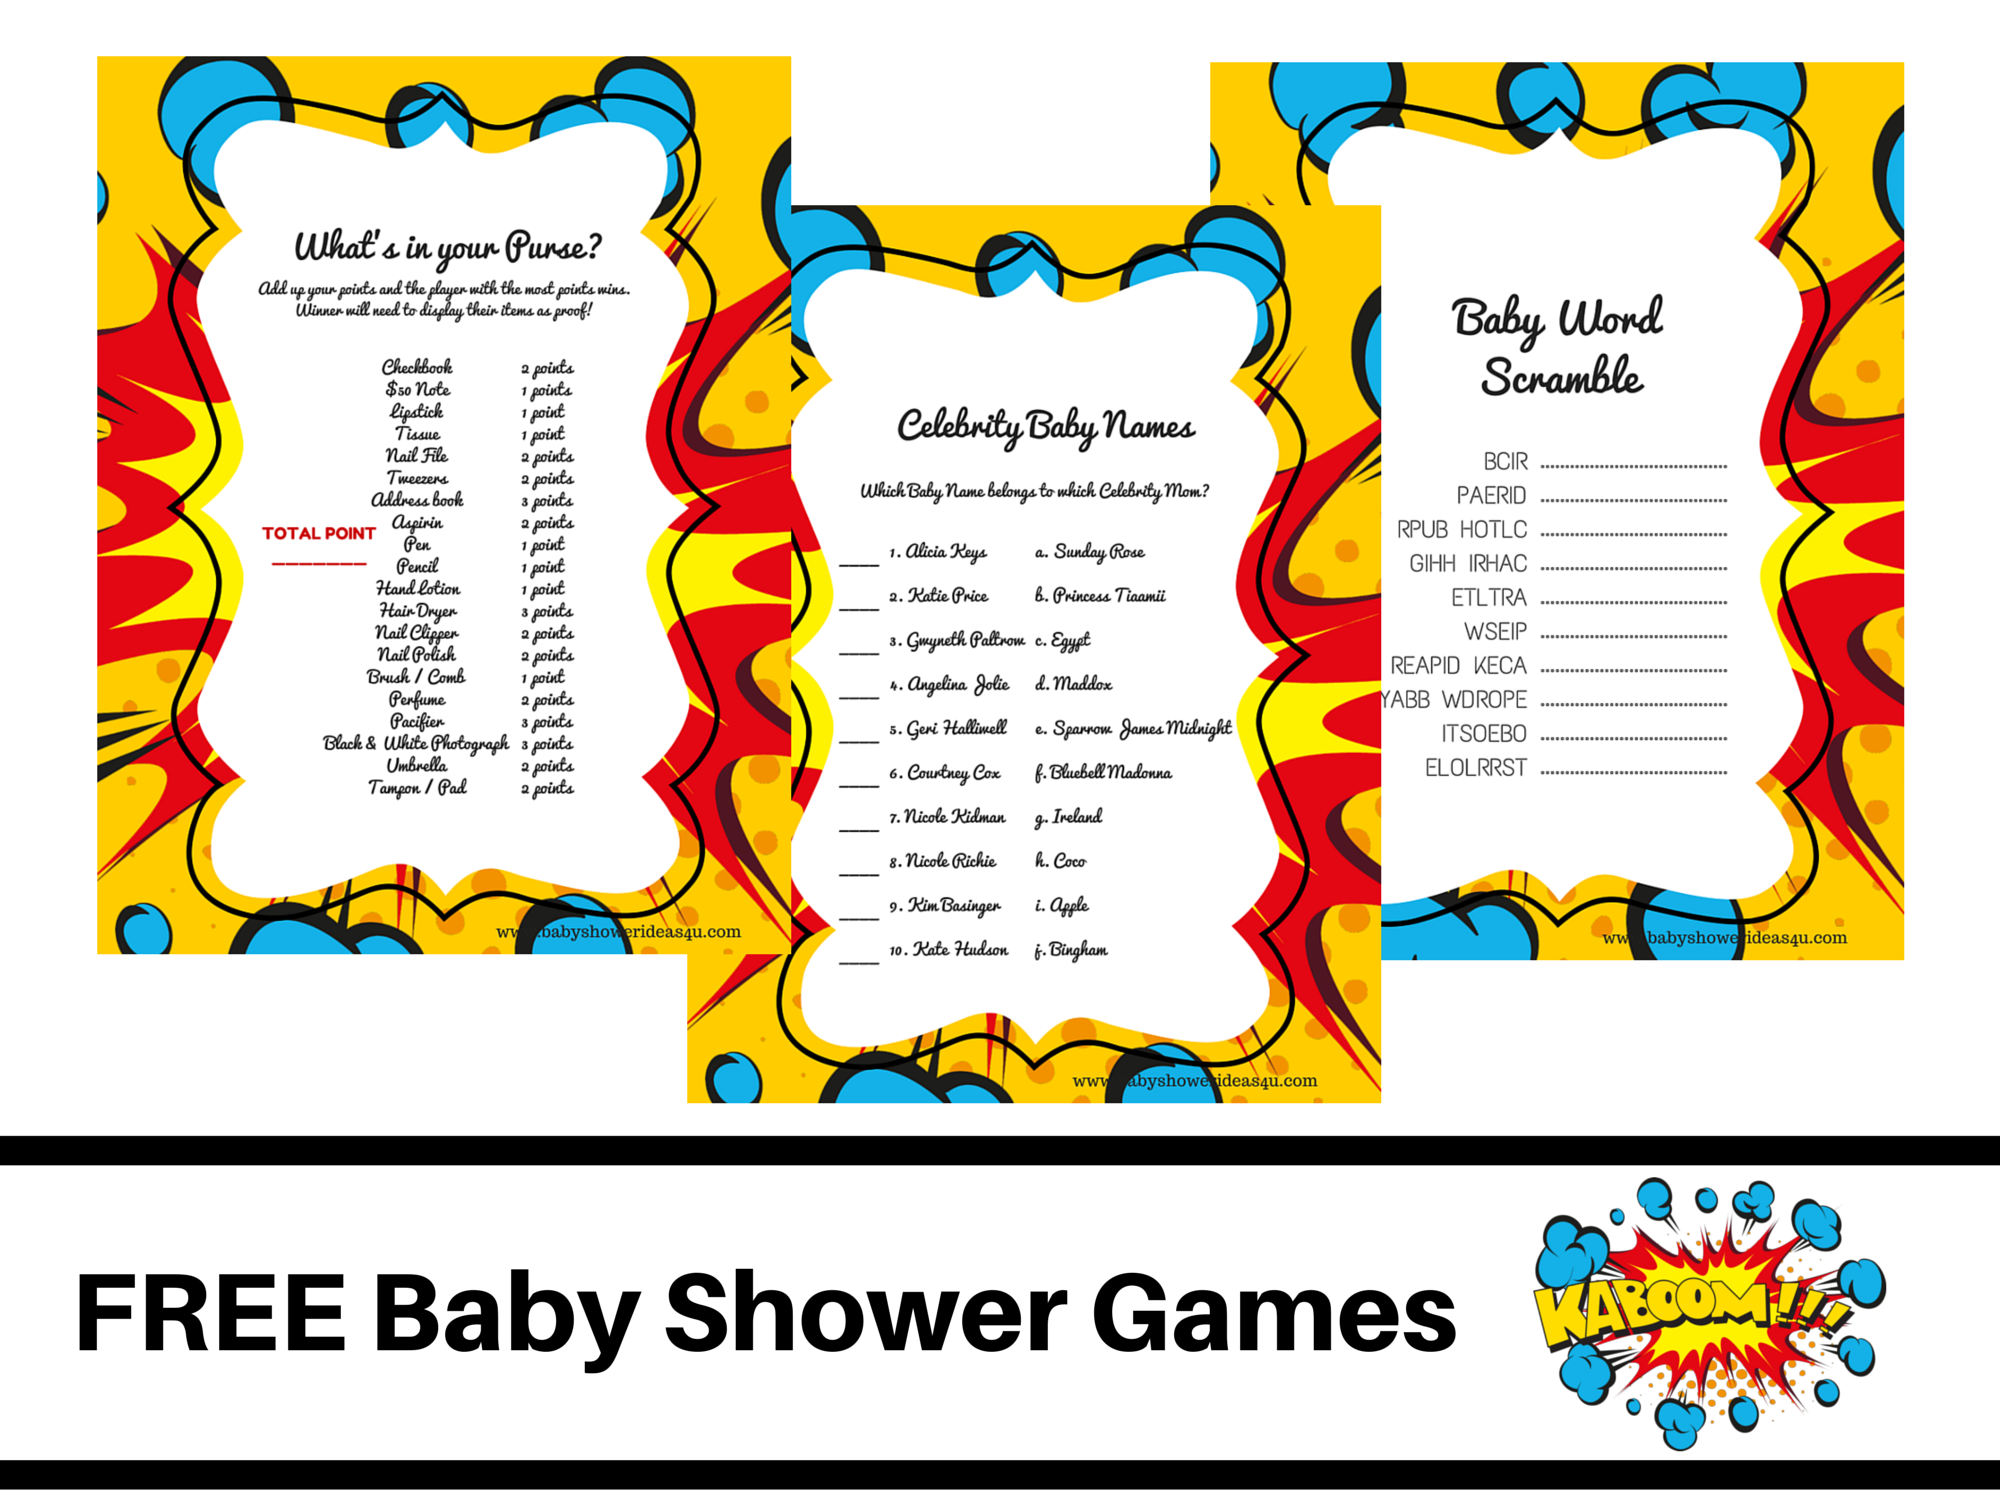 theme-baby-shower-FREE-PRINTABLE-BABY-SHOWER-GAMES-baby-word-scramble ...